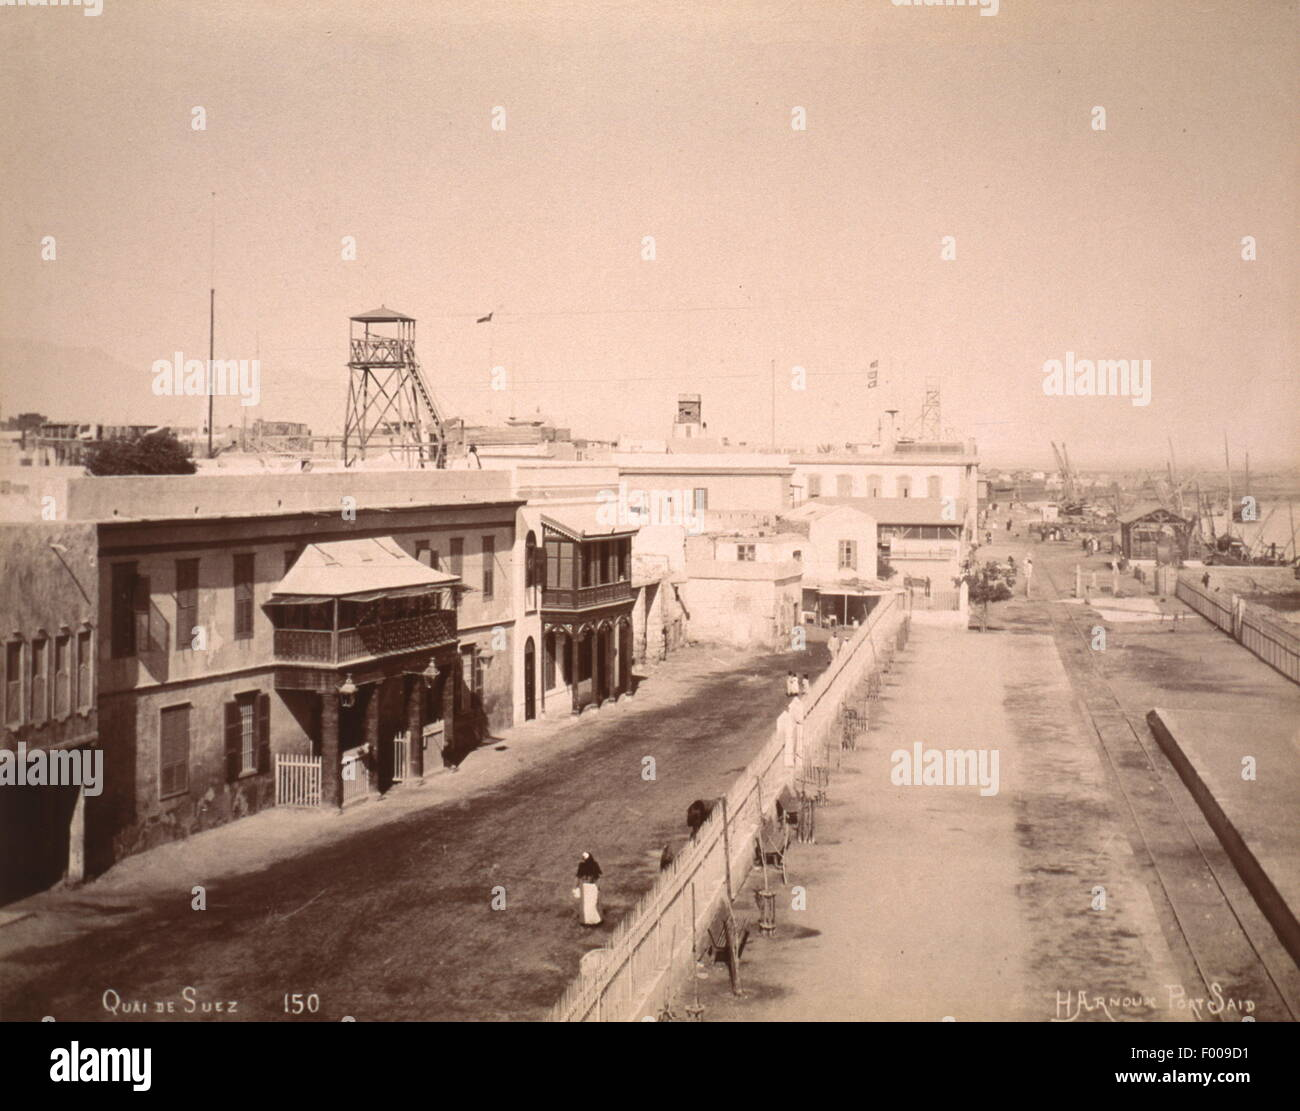 Suez, Egypt - 1870s - A quay at Suez.  Taking 10 years to build, the Suez Canal was the brainchild of Frenchman - Stock Image